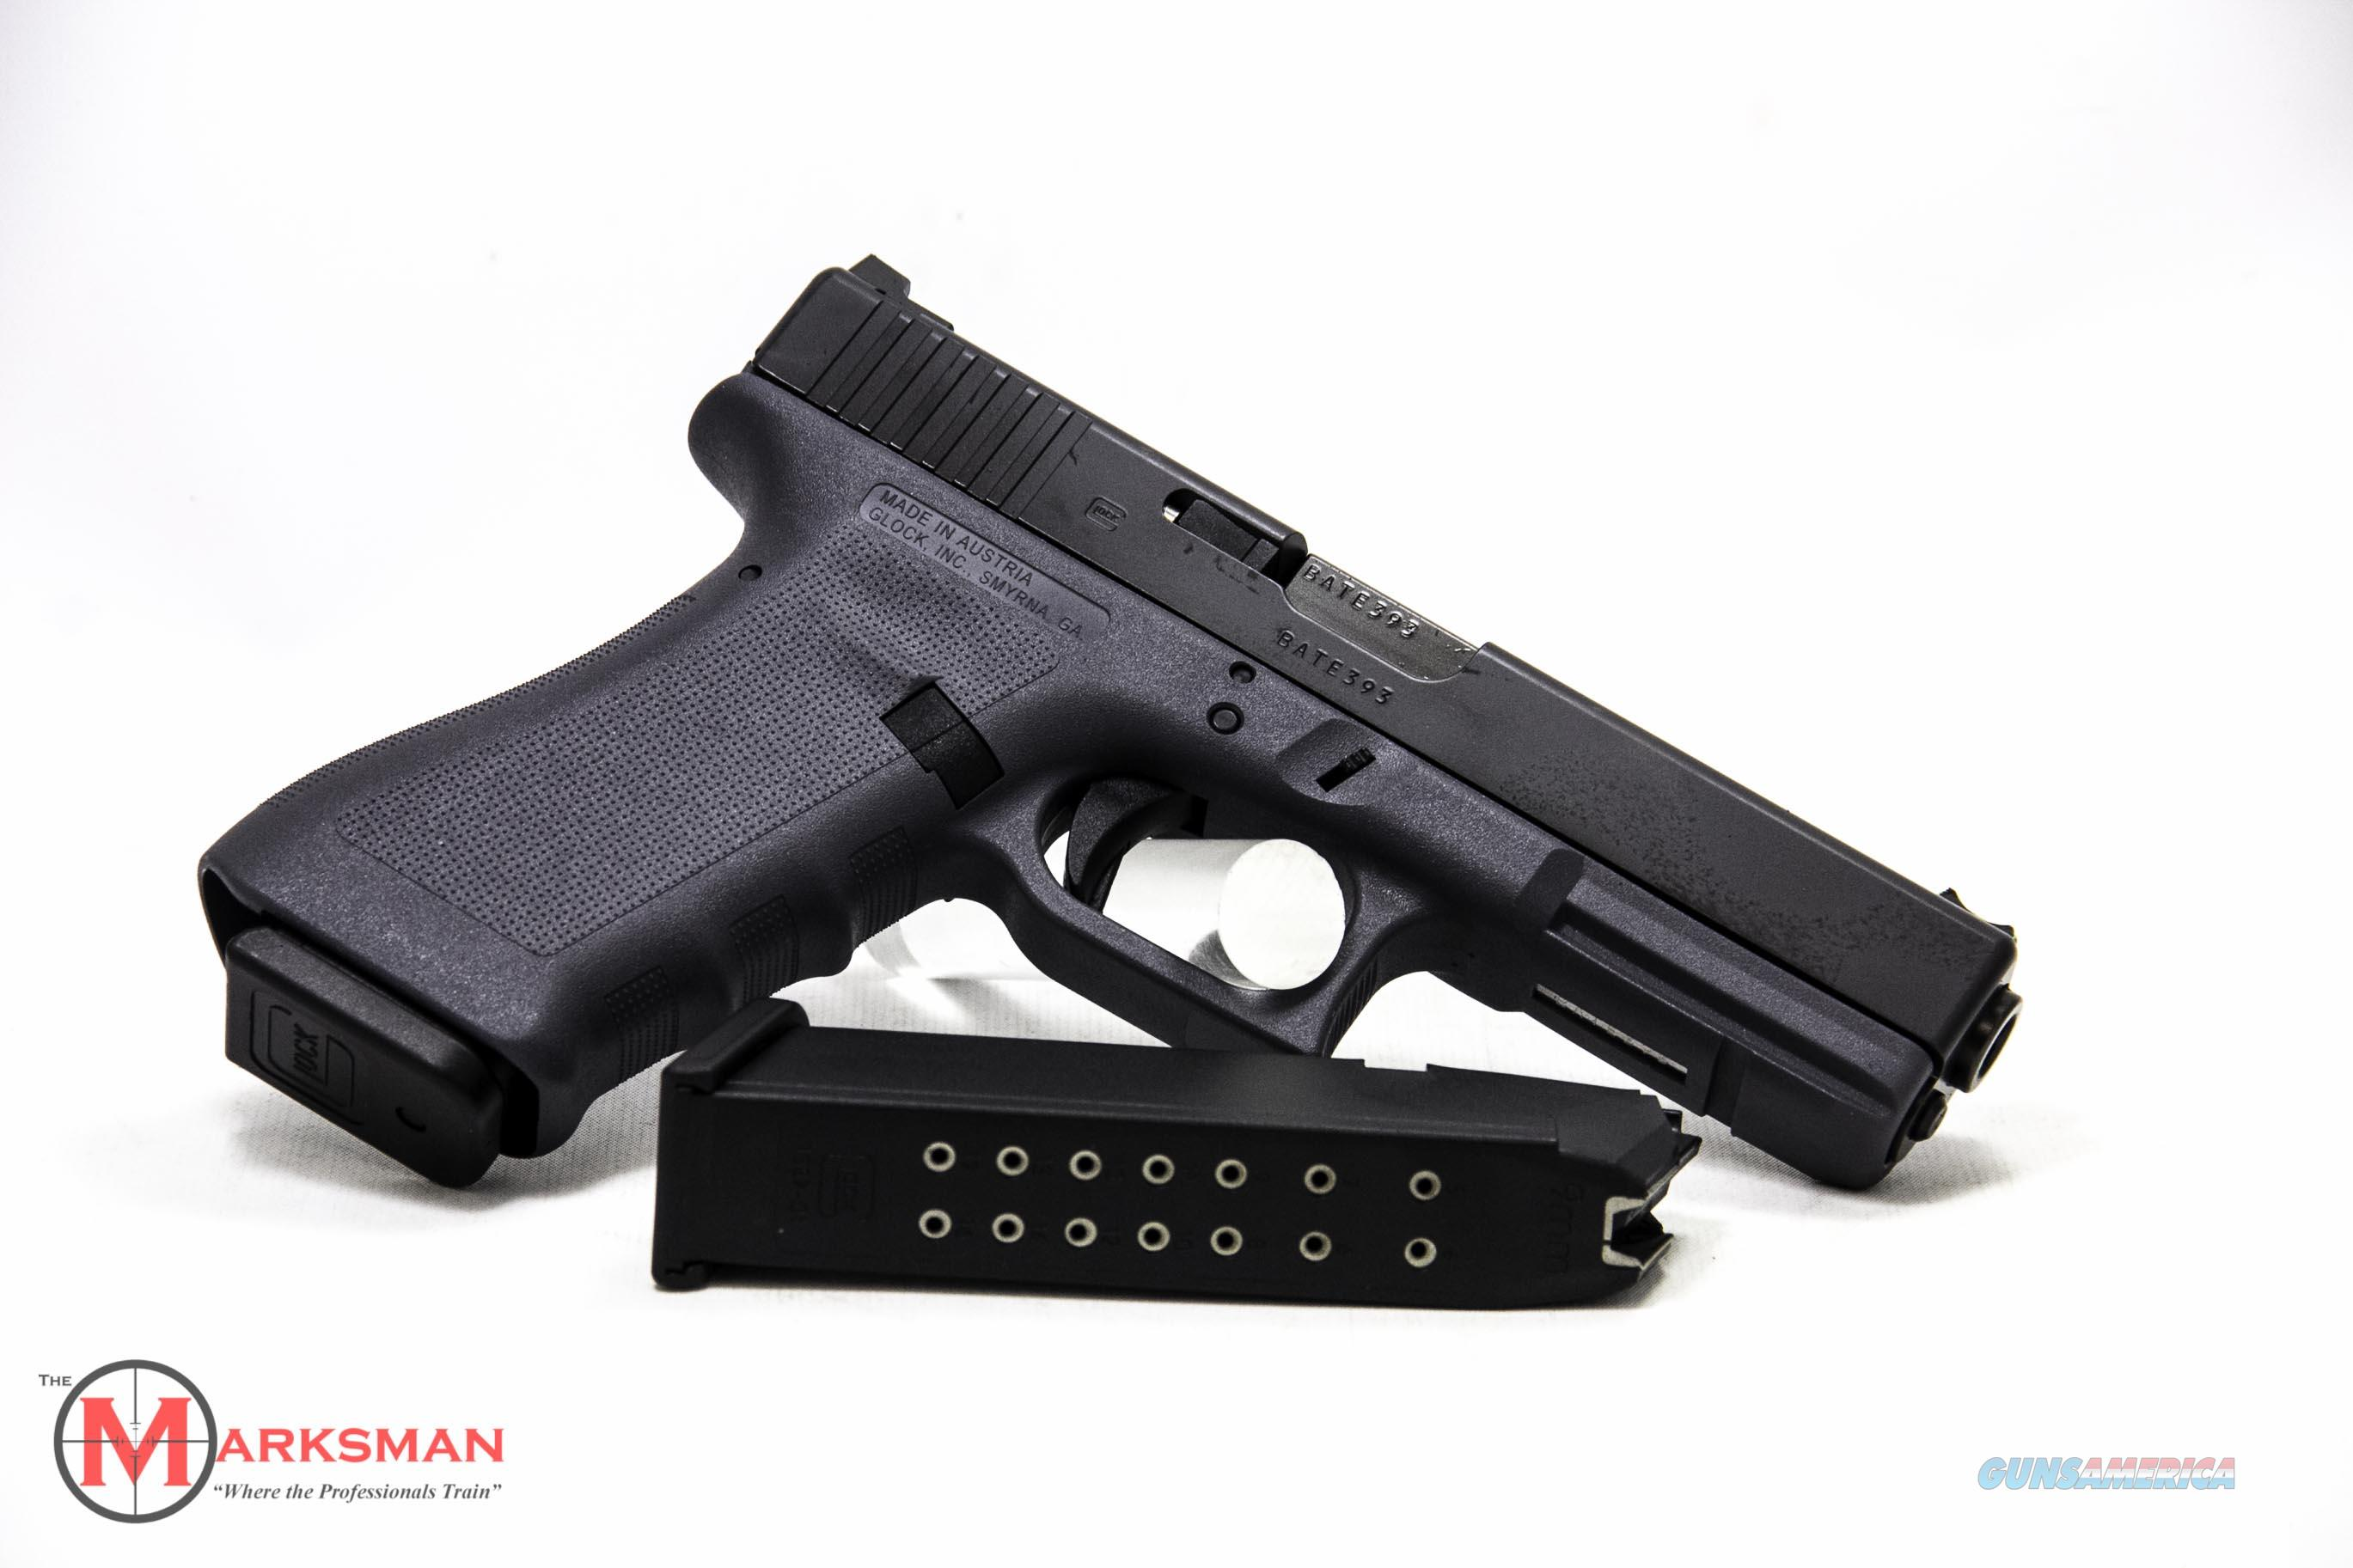 Glock 17 Generation 3, 9mm, Gray NEW Lipsey's/Vickers Tactical Exclusive  Guns > Pistols > Glock Pistols > 17